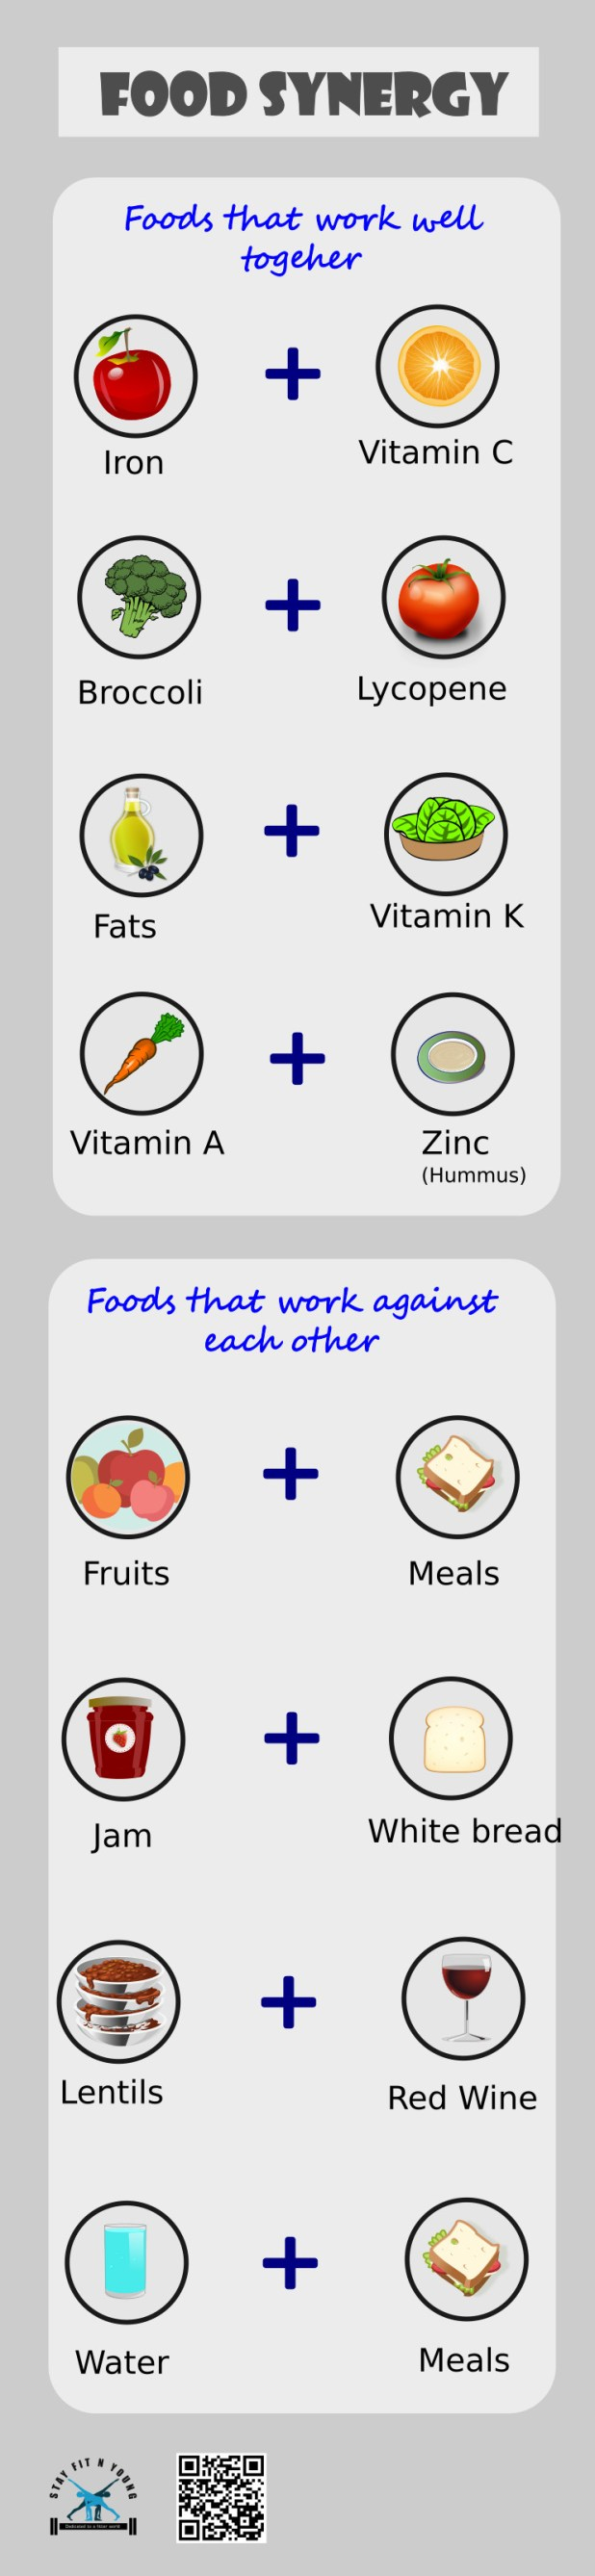 Food Synergy | Food Pairing | Healthy Food Choices | Nutrition